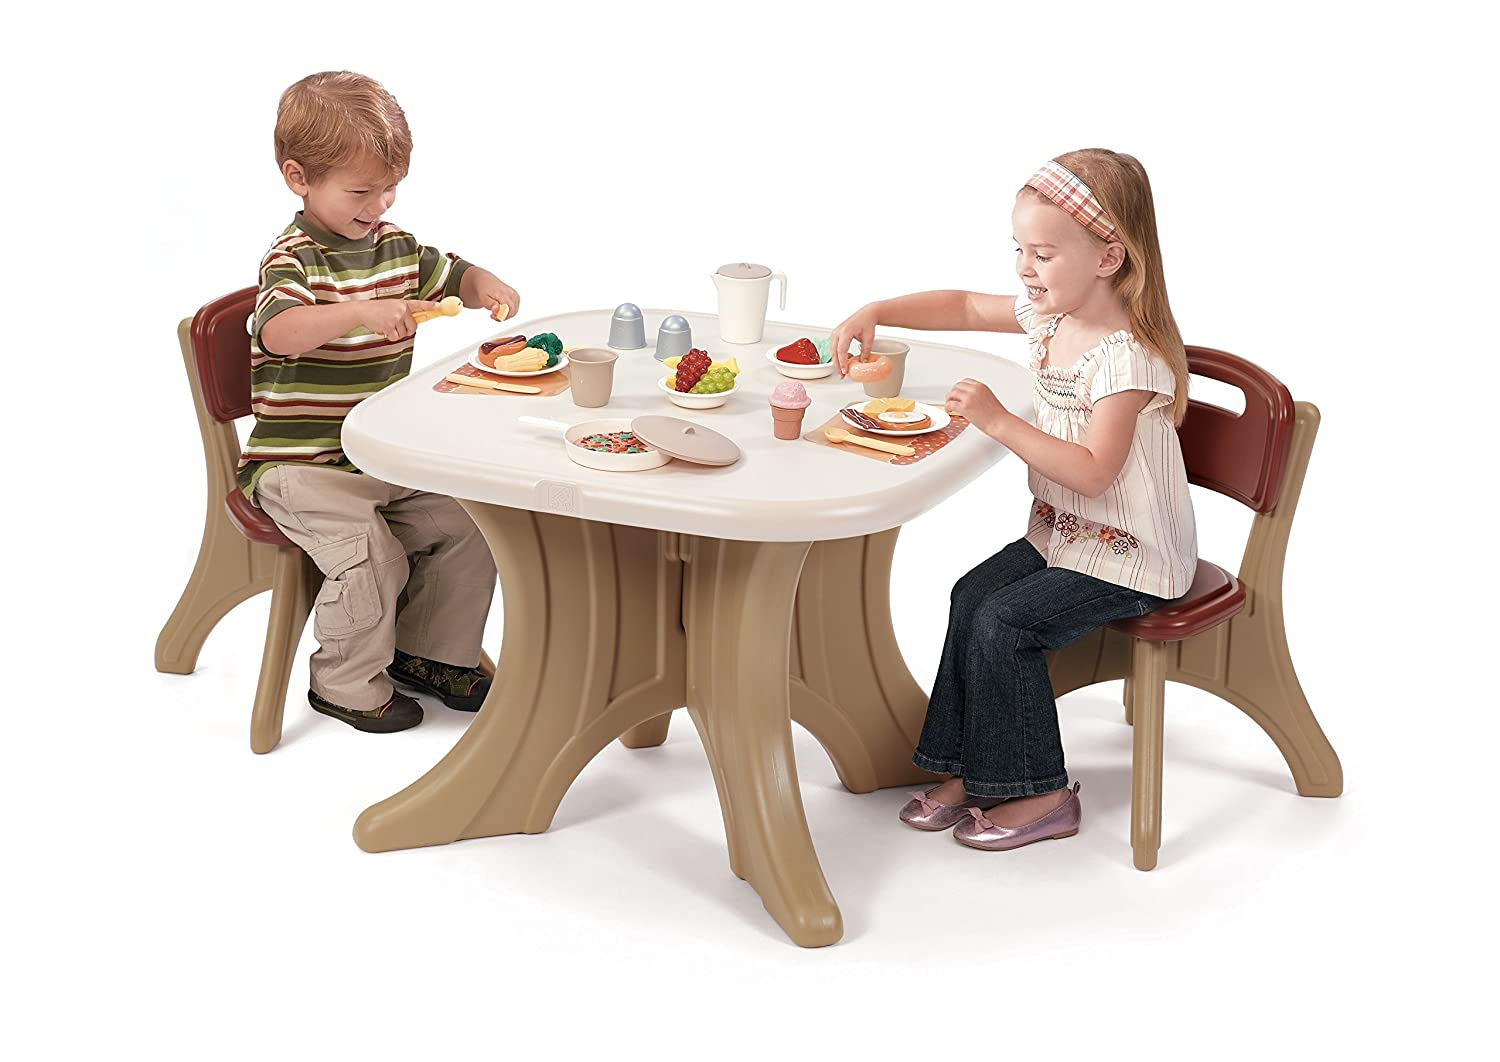 sc 1 st  Amazon.com & Amazon.com: Step2 Traditions Table u0026 Chairs Set: Toys u0026 Games